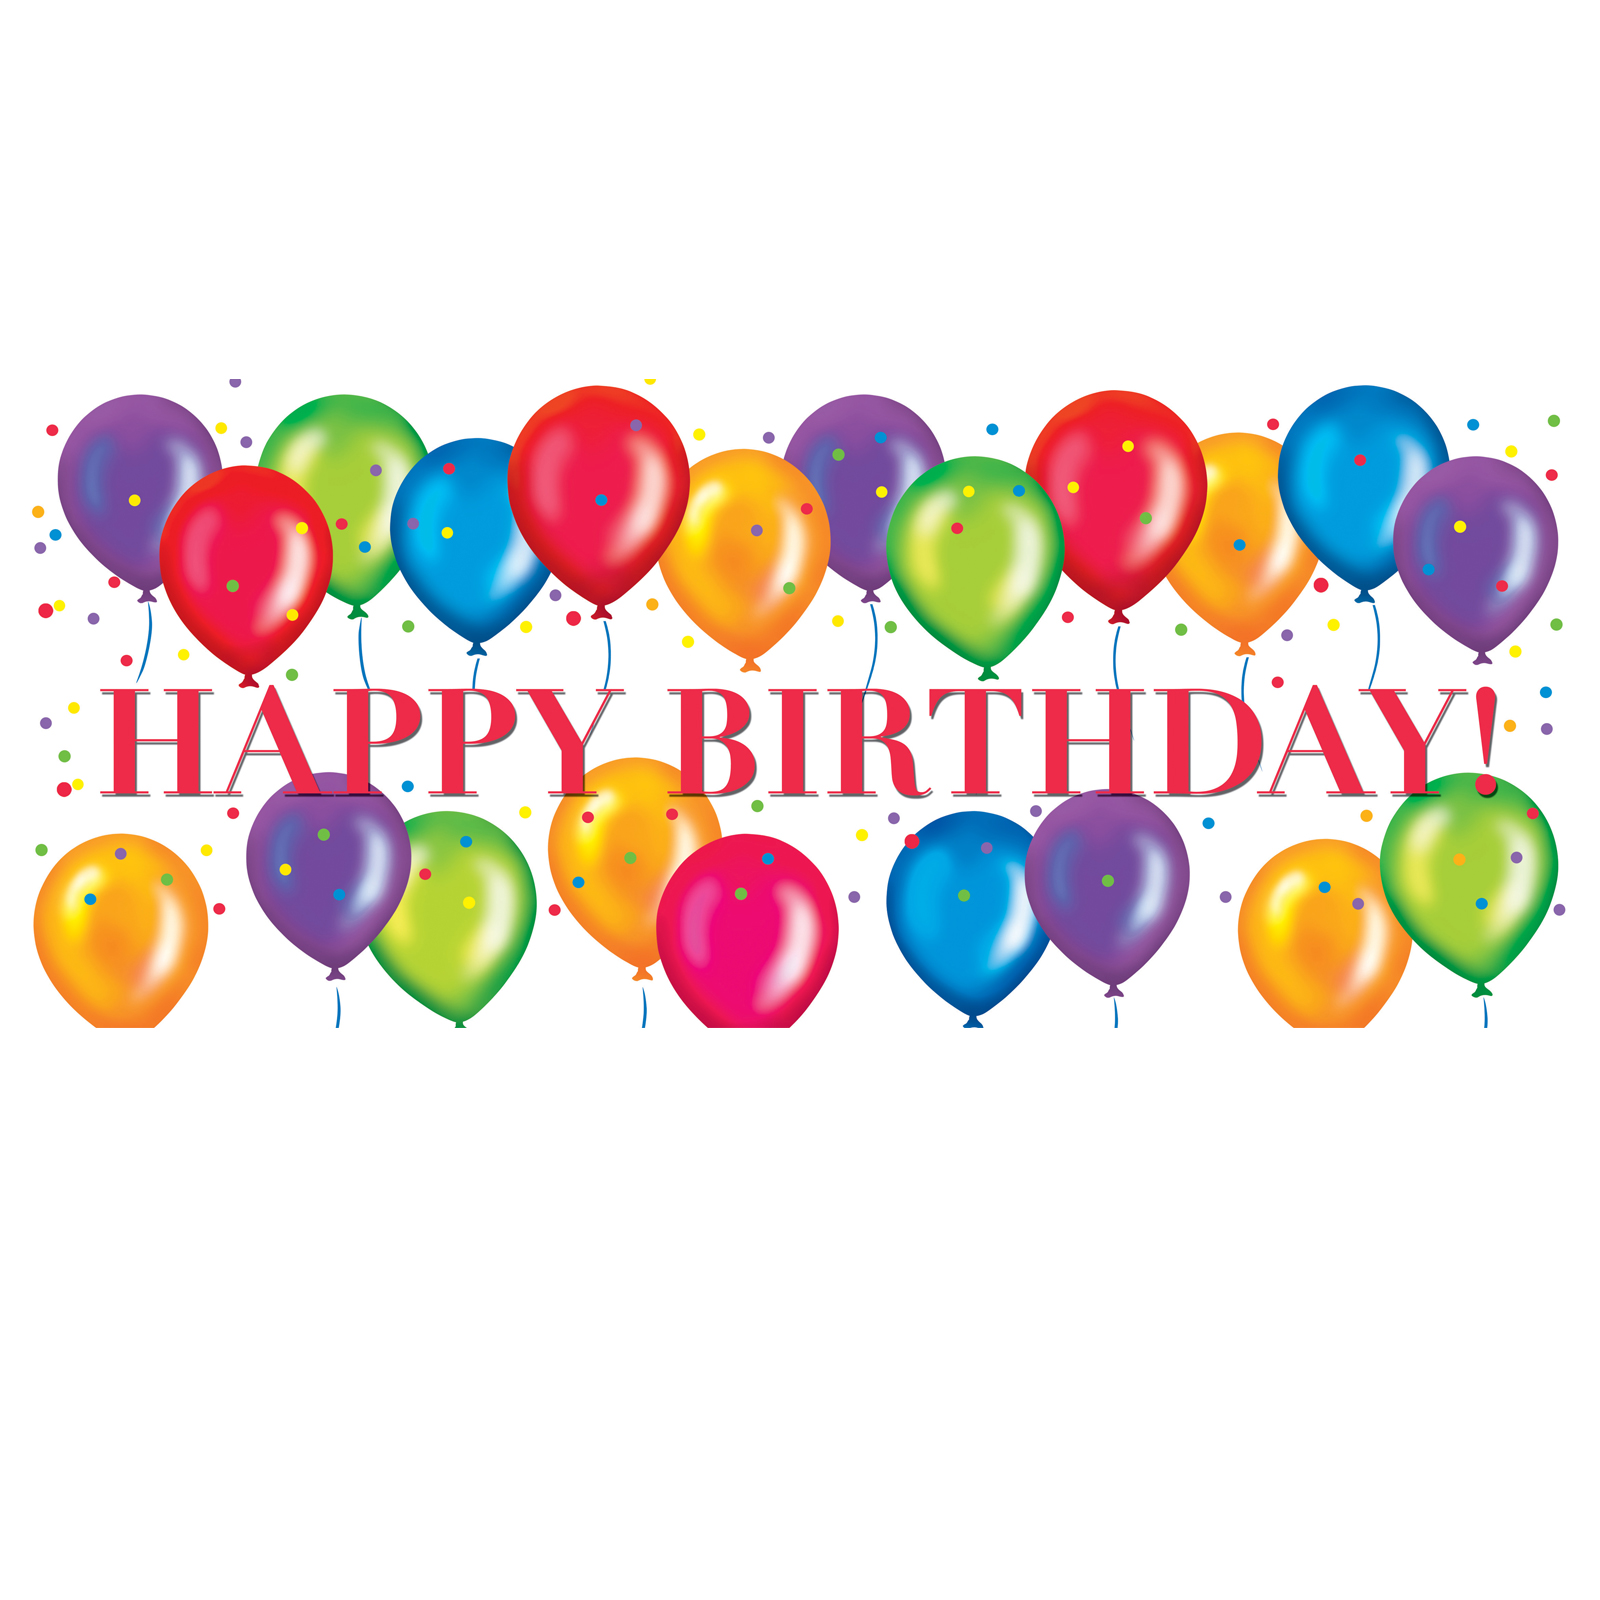 Ballon Bilder Happy Birthday Ballon Bilder Clipart Best